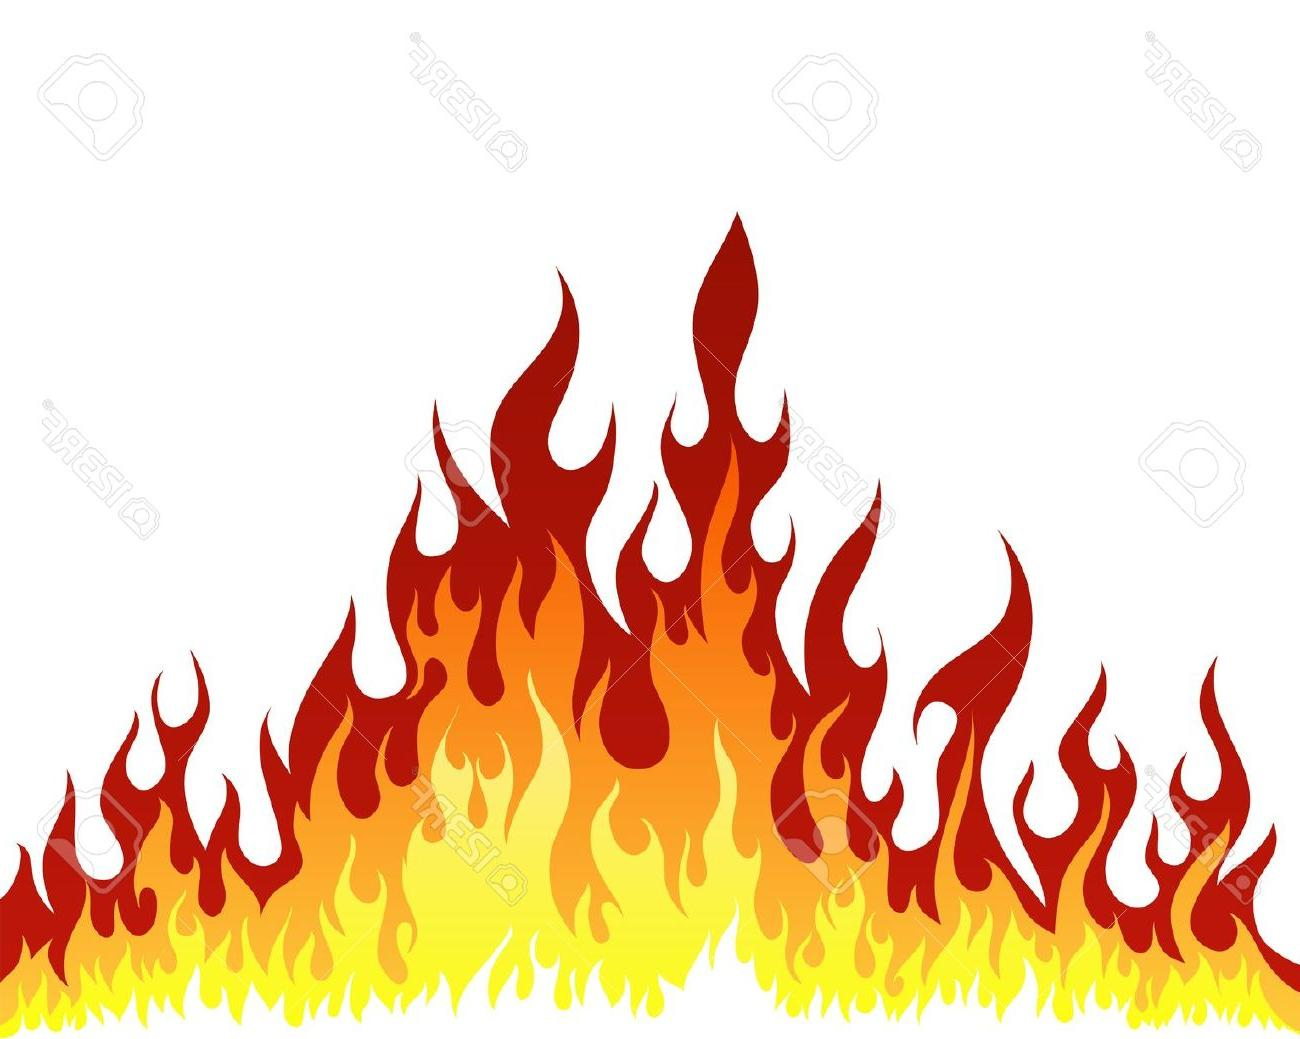 Flame background clipart image download Flames Background Clipart | Free download best Flames Background ... image download